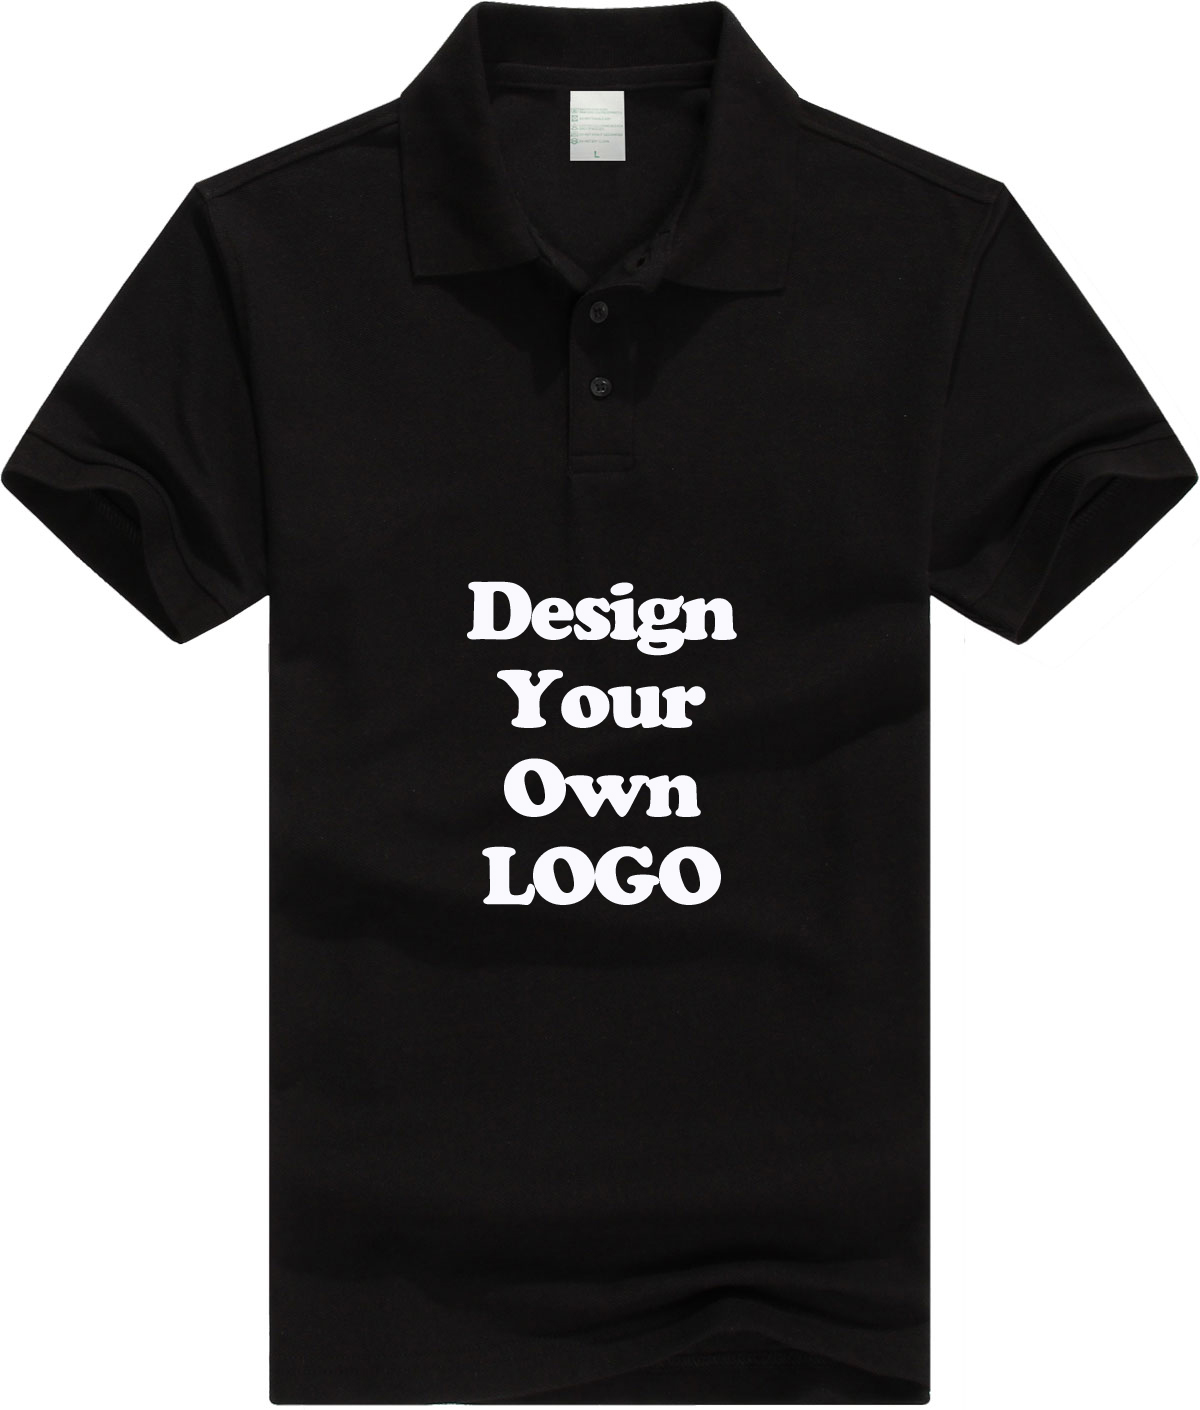 Make your own logo polo shirts ladies sweater patterns for Custom polo shirts canada